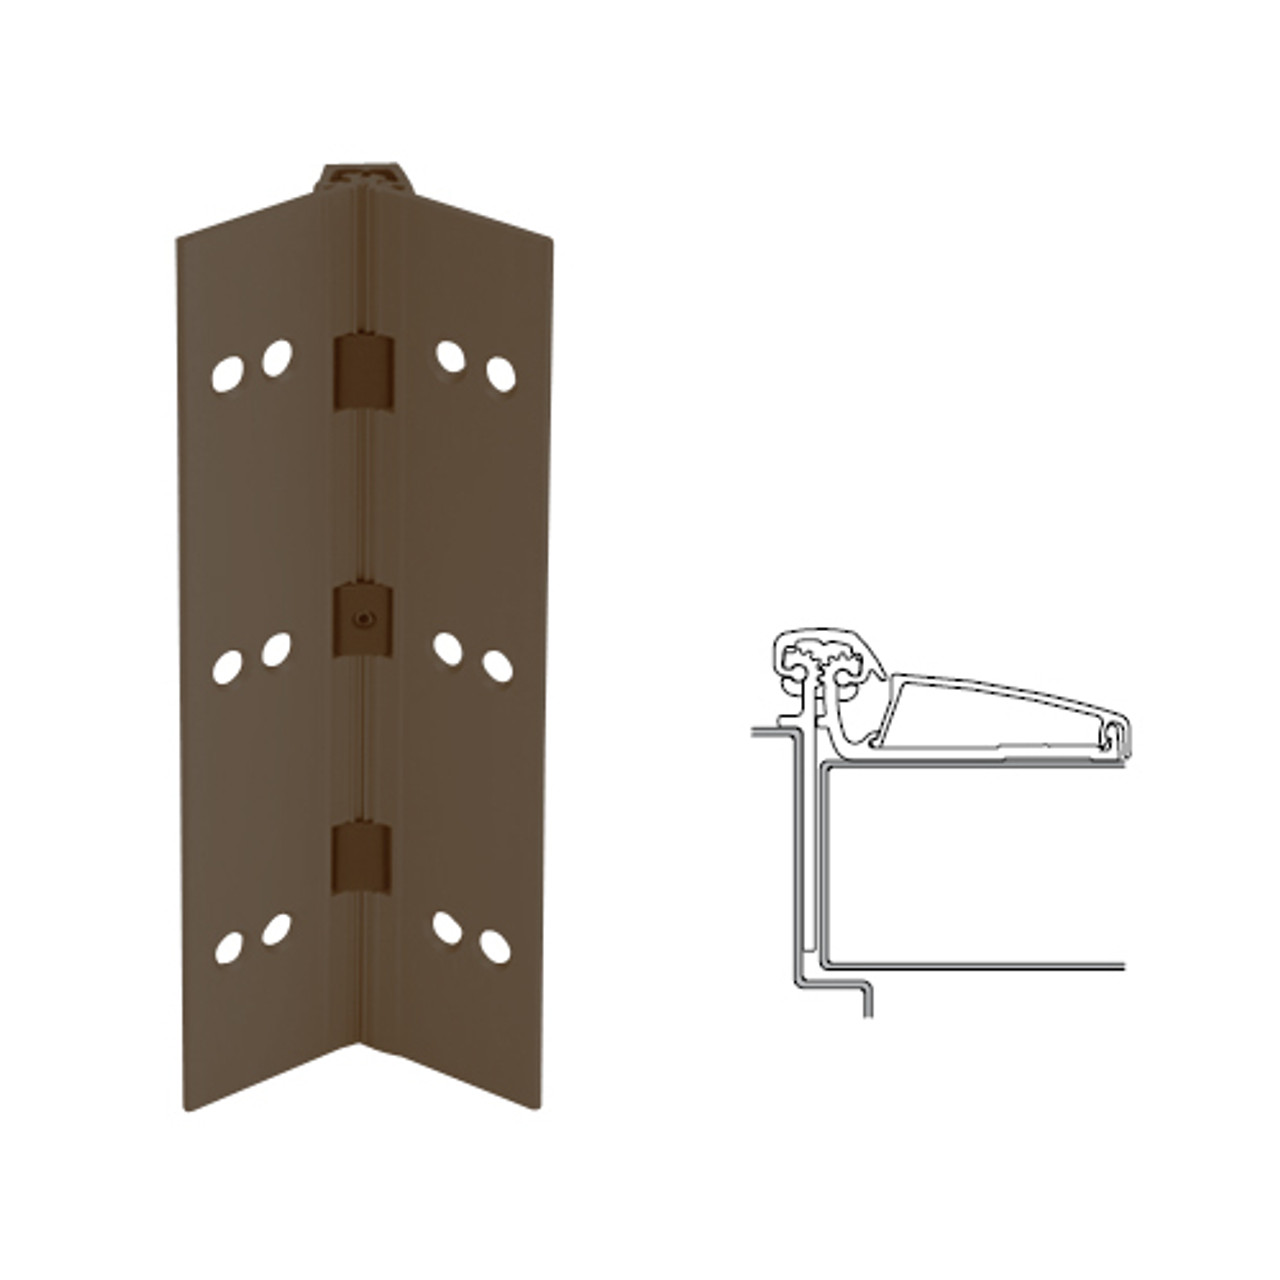 046XY-313AN-120-TFWD IVES Adjustable Half Surface Continuous Geared Hinges with Thread Forming Screws in Dark Bronze Anodized